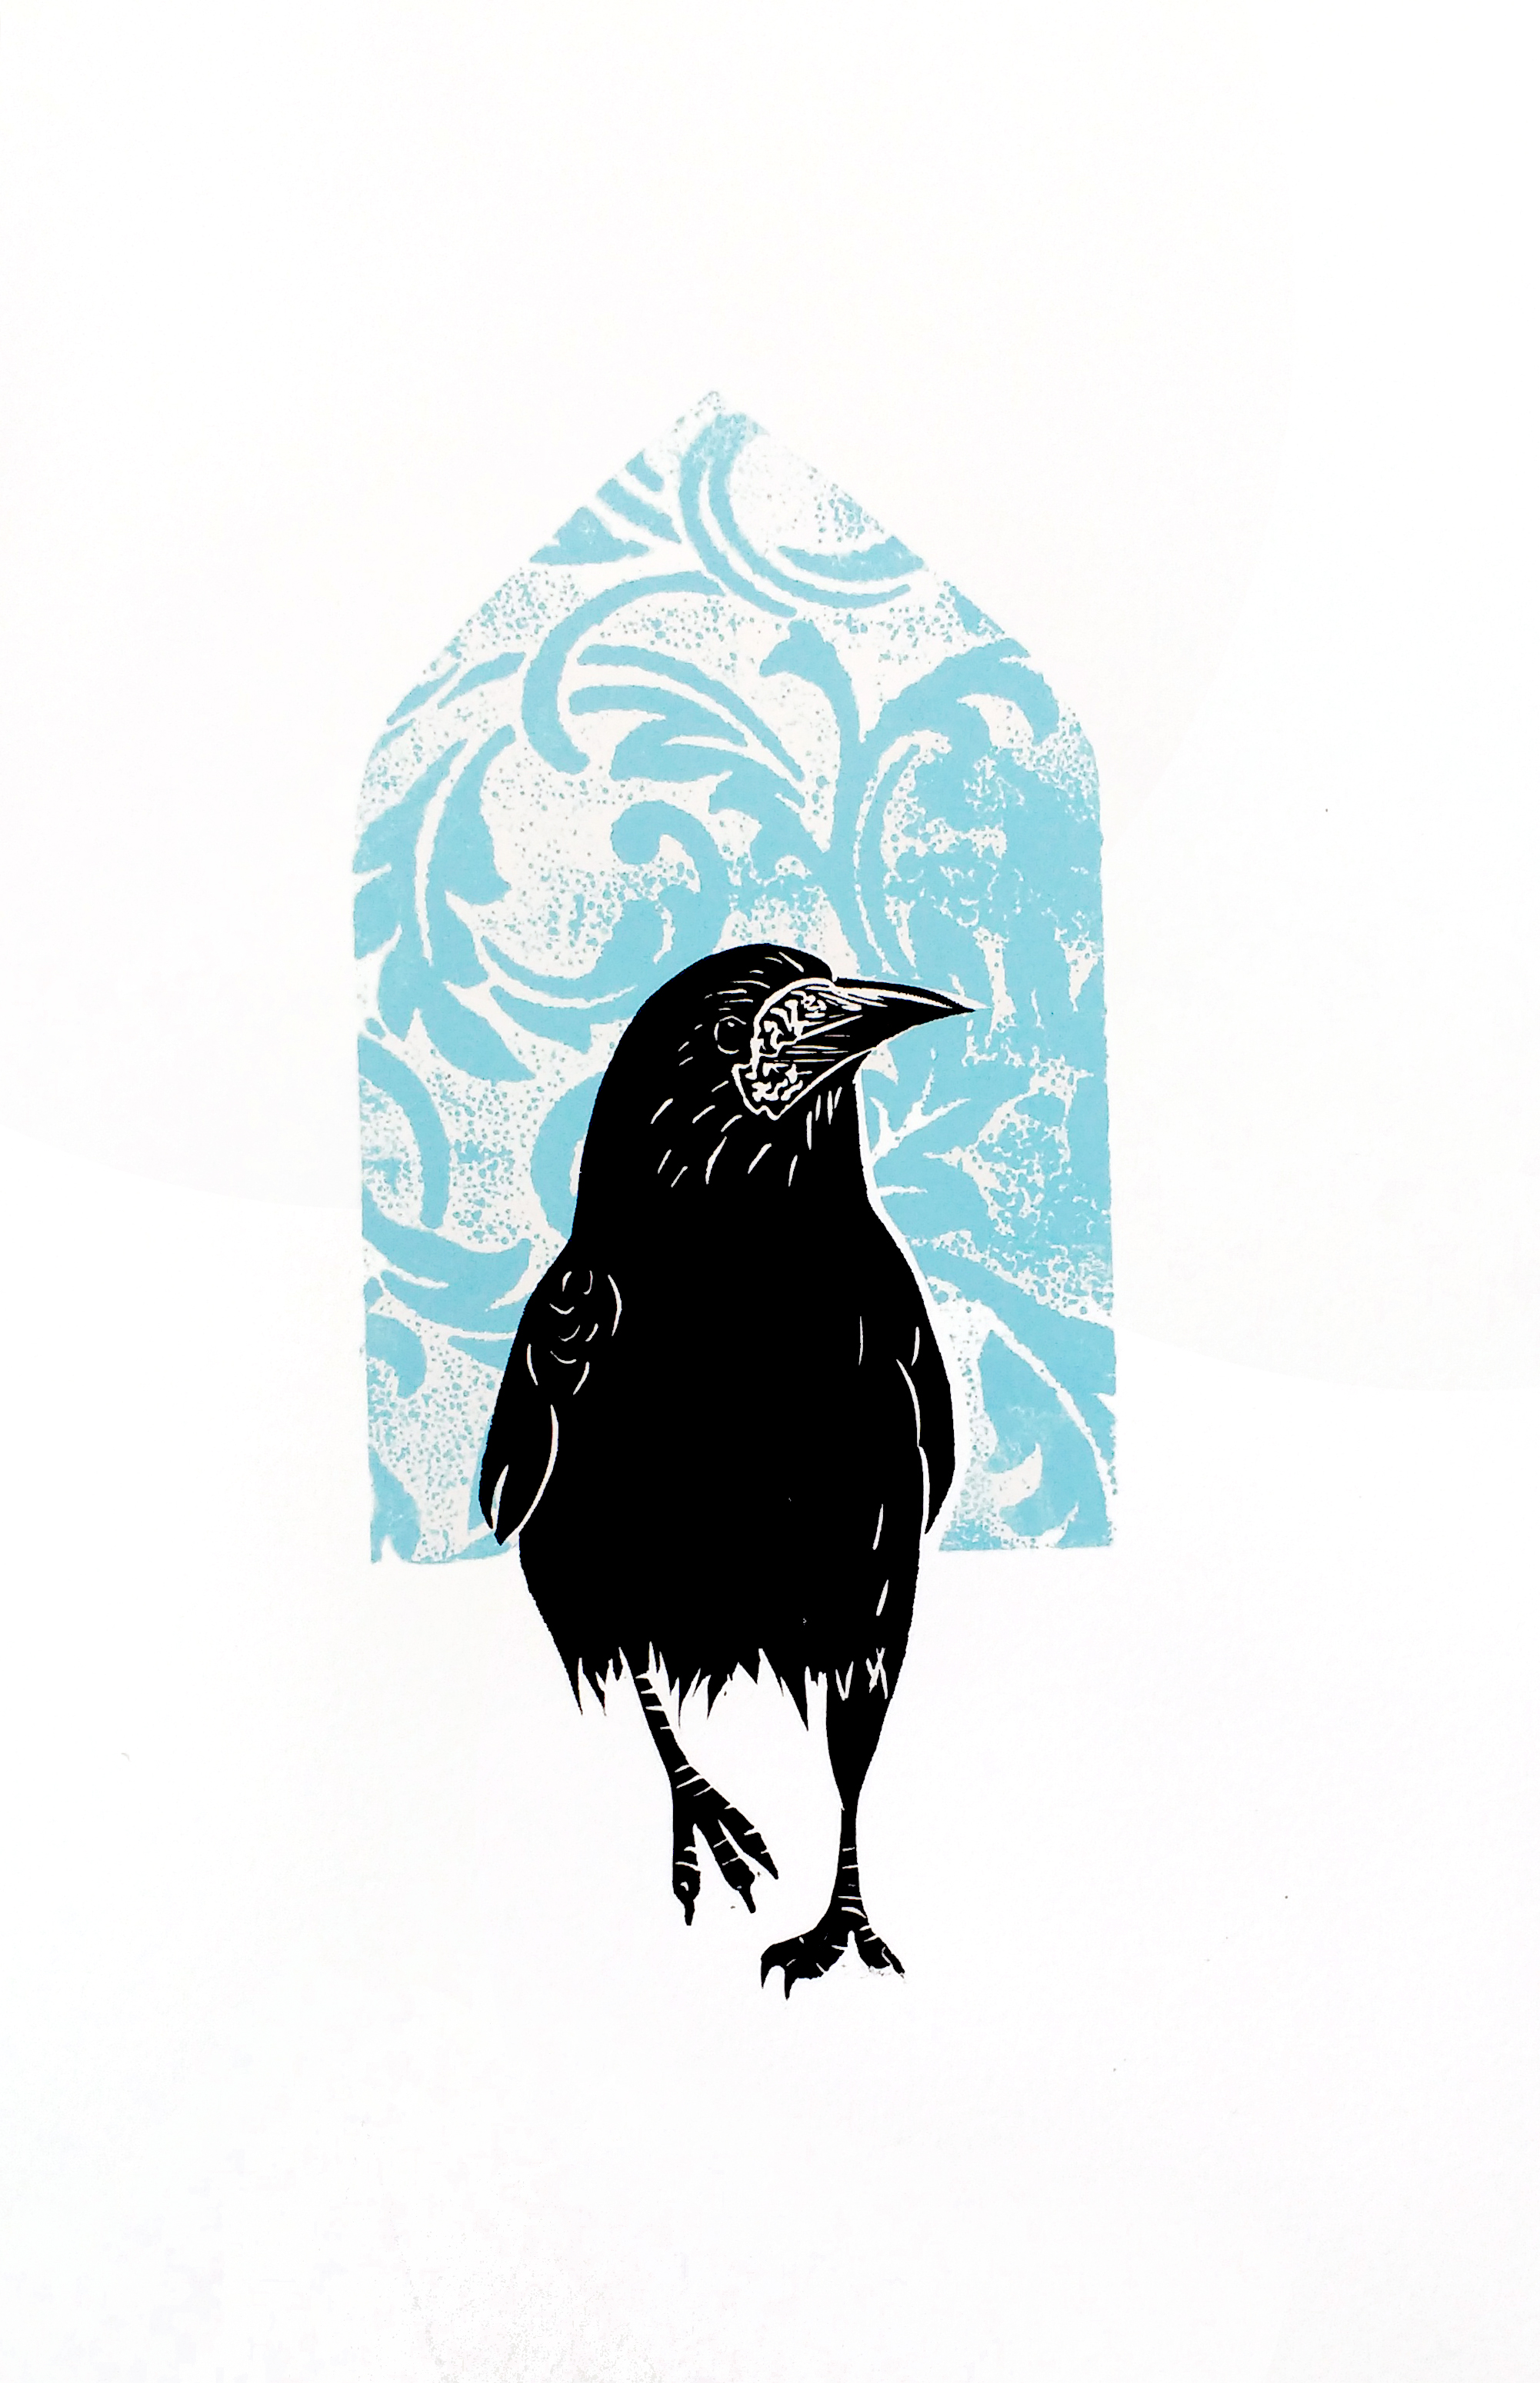 rook and the window